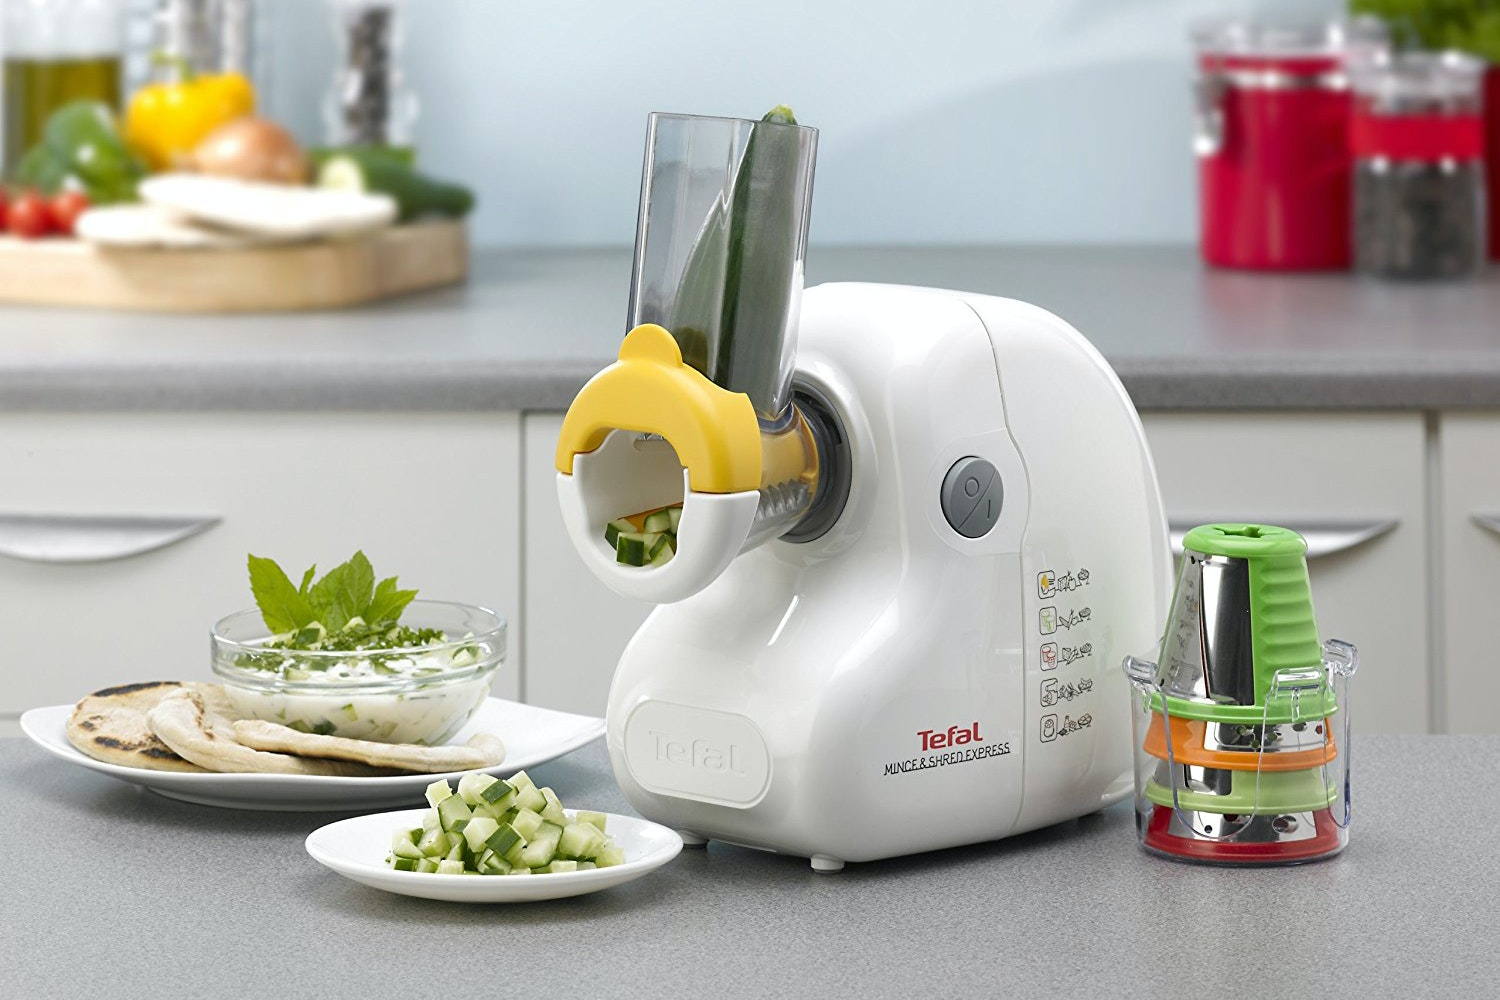 Tefal Mince and Shred Express | NE210140